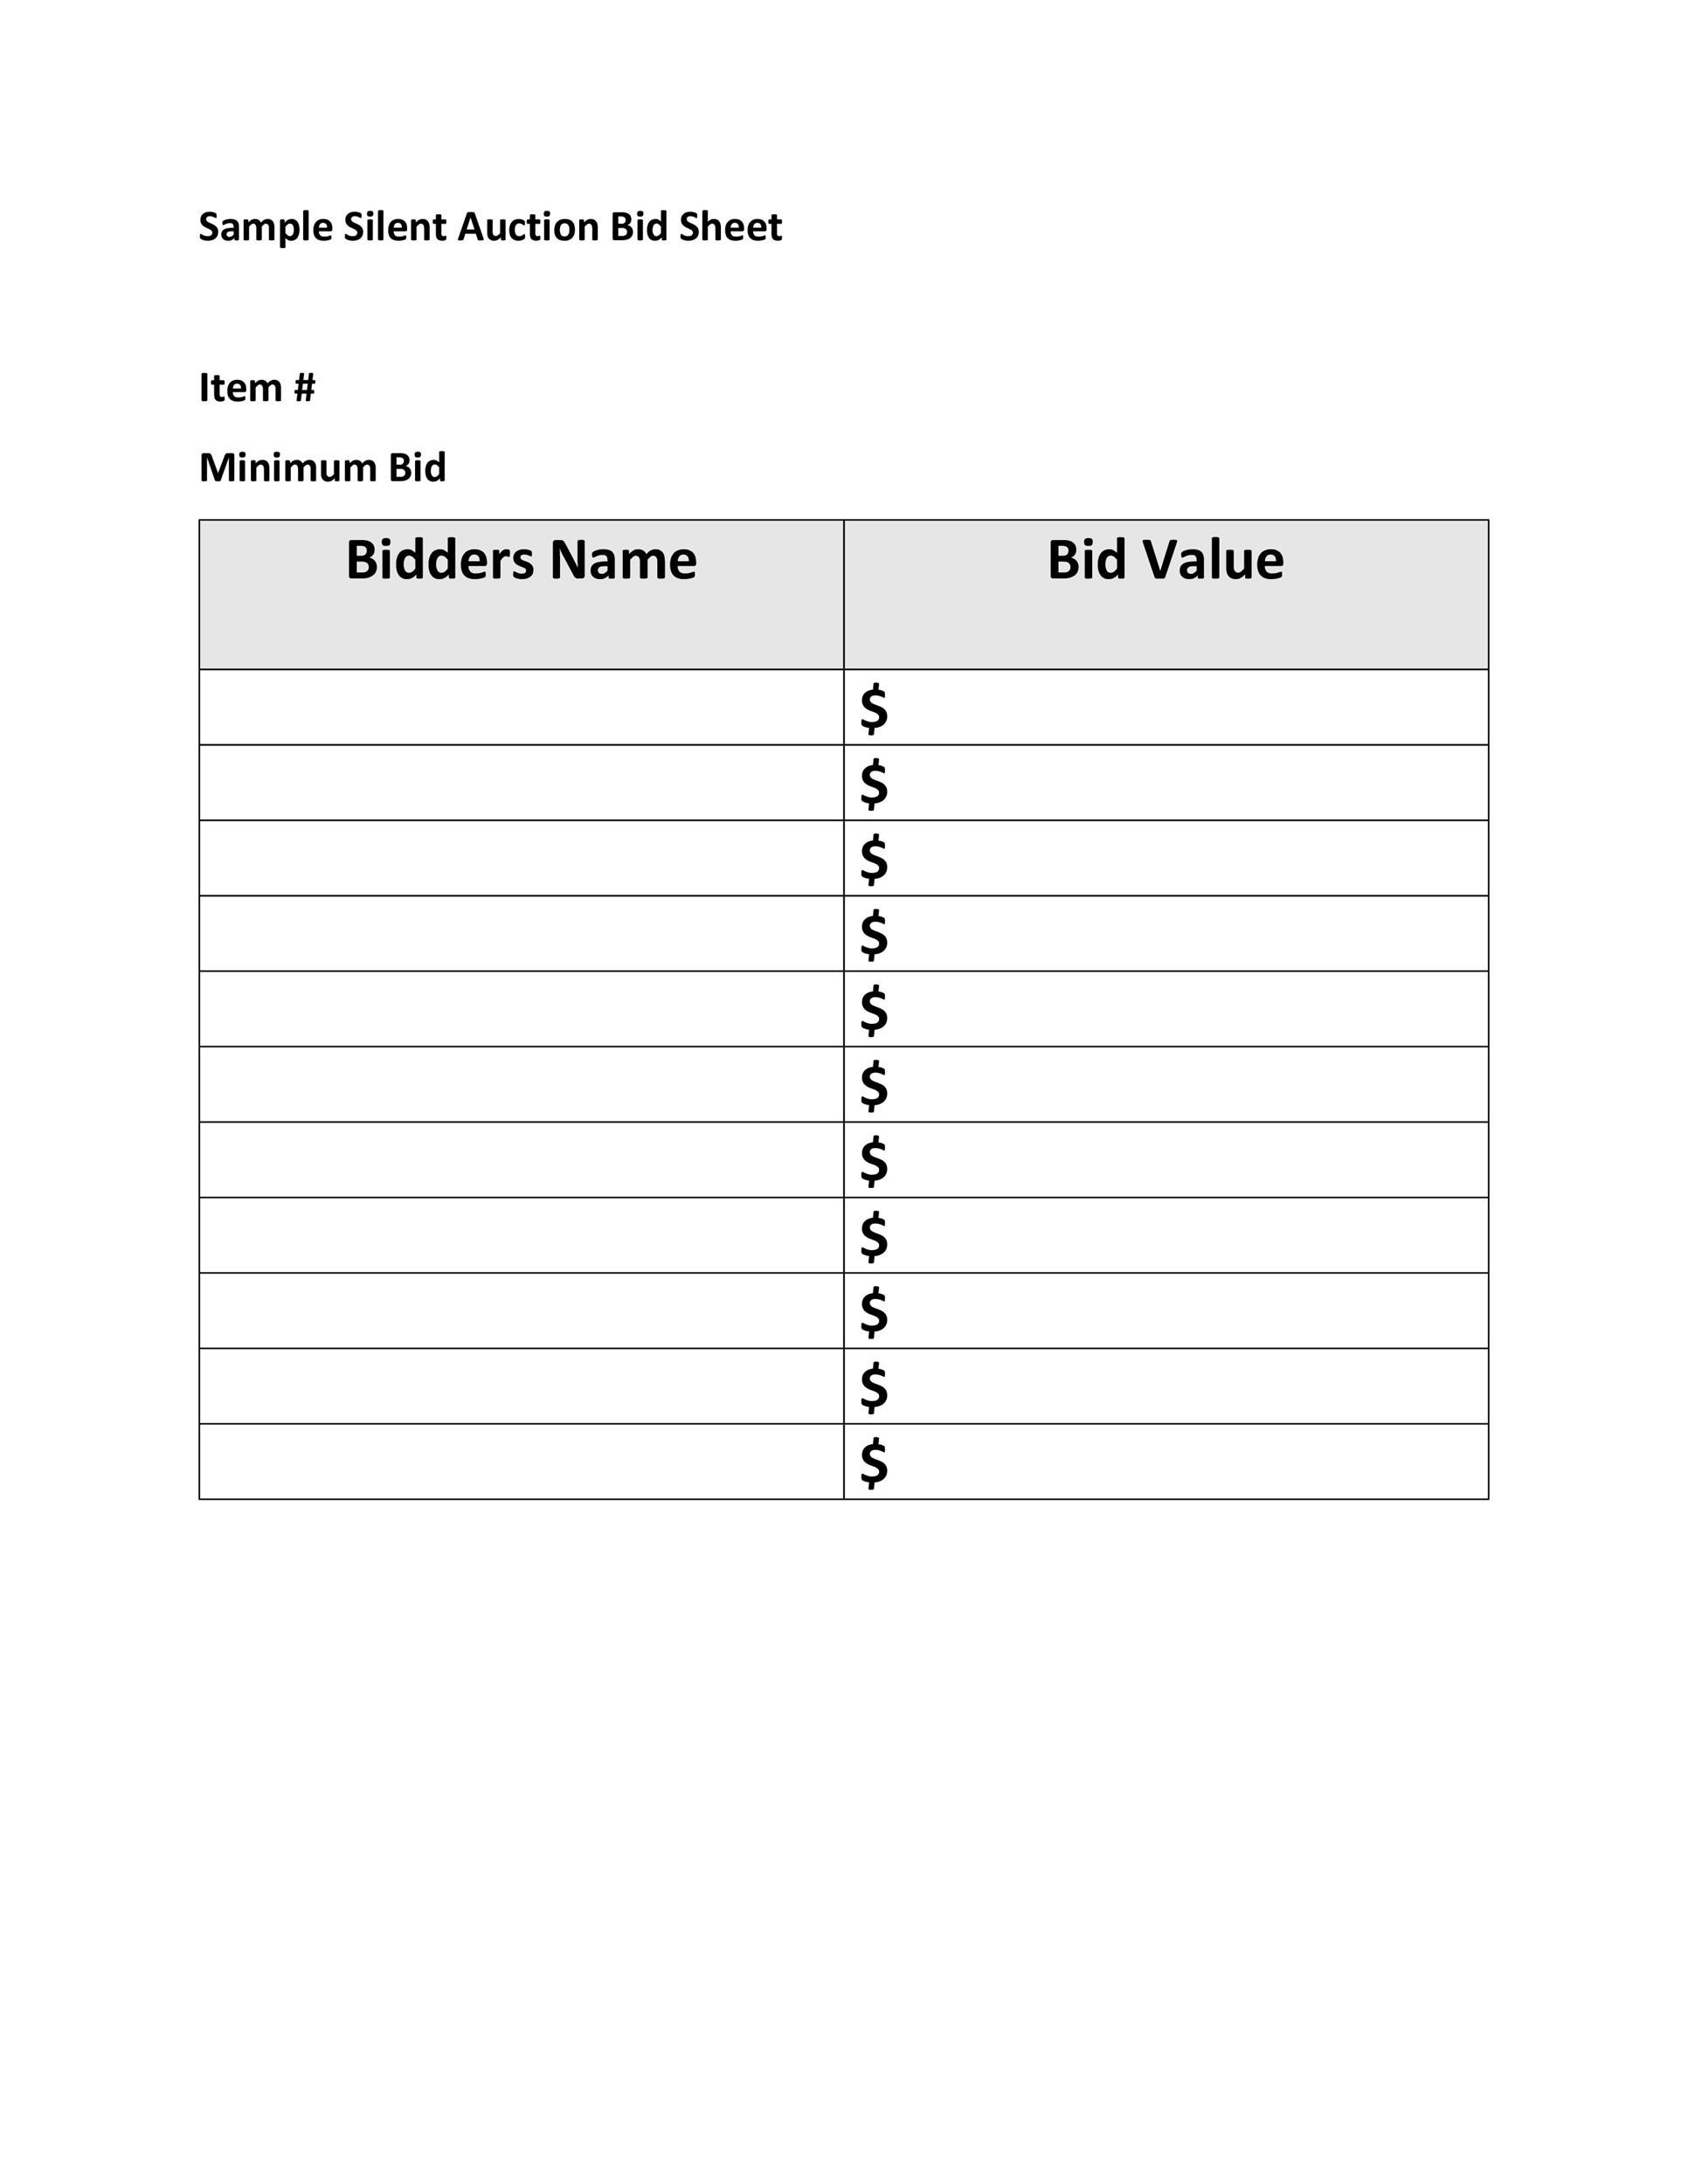 40+ Silent Auction Bid Sheet Templates [Word, Excel] - Template Lab